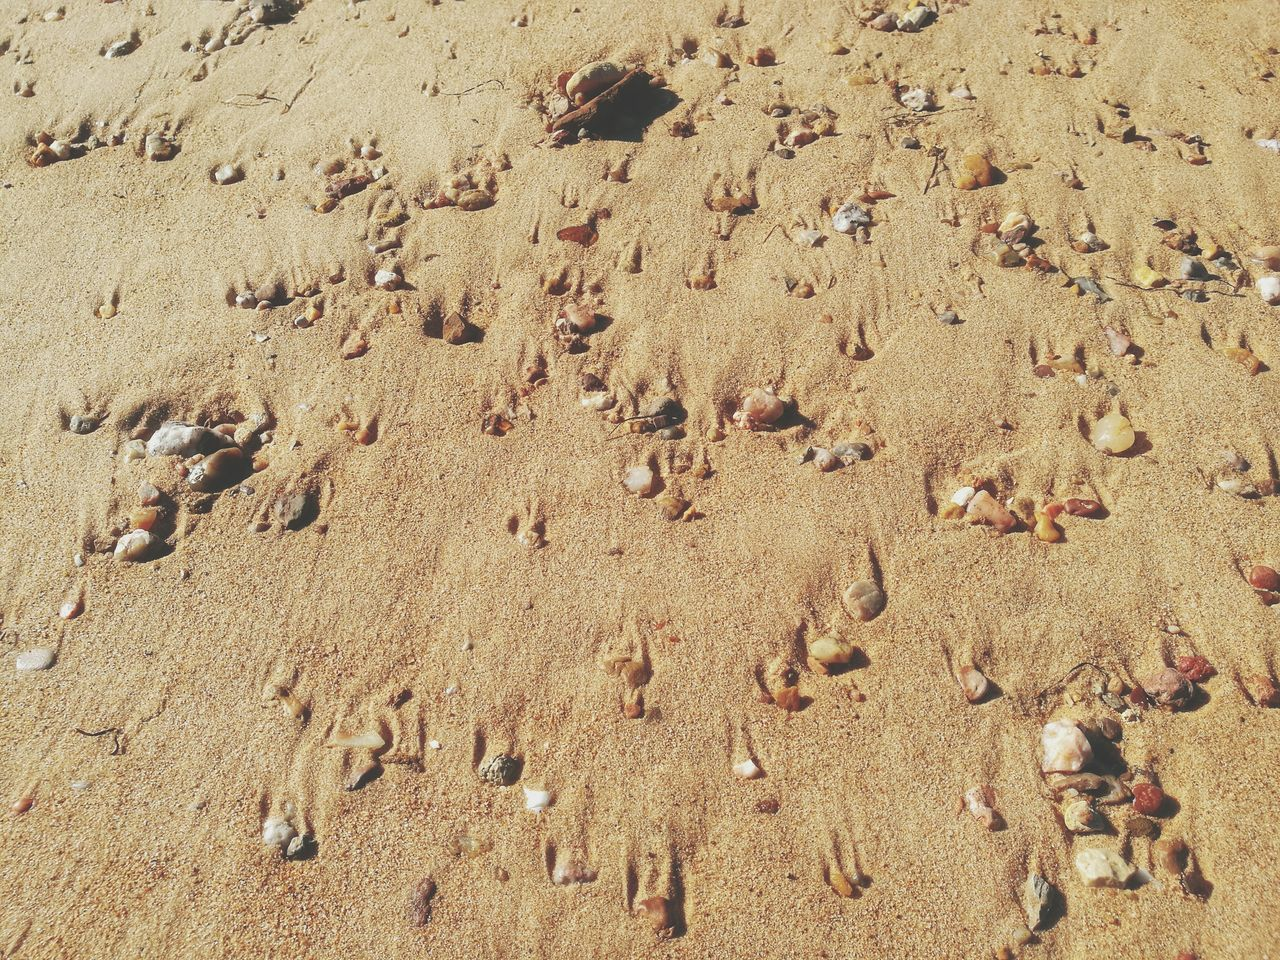 sand, beach, day, footprint, high angle view, outdoors, nature, no people, close-up, mammal